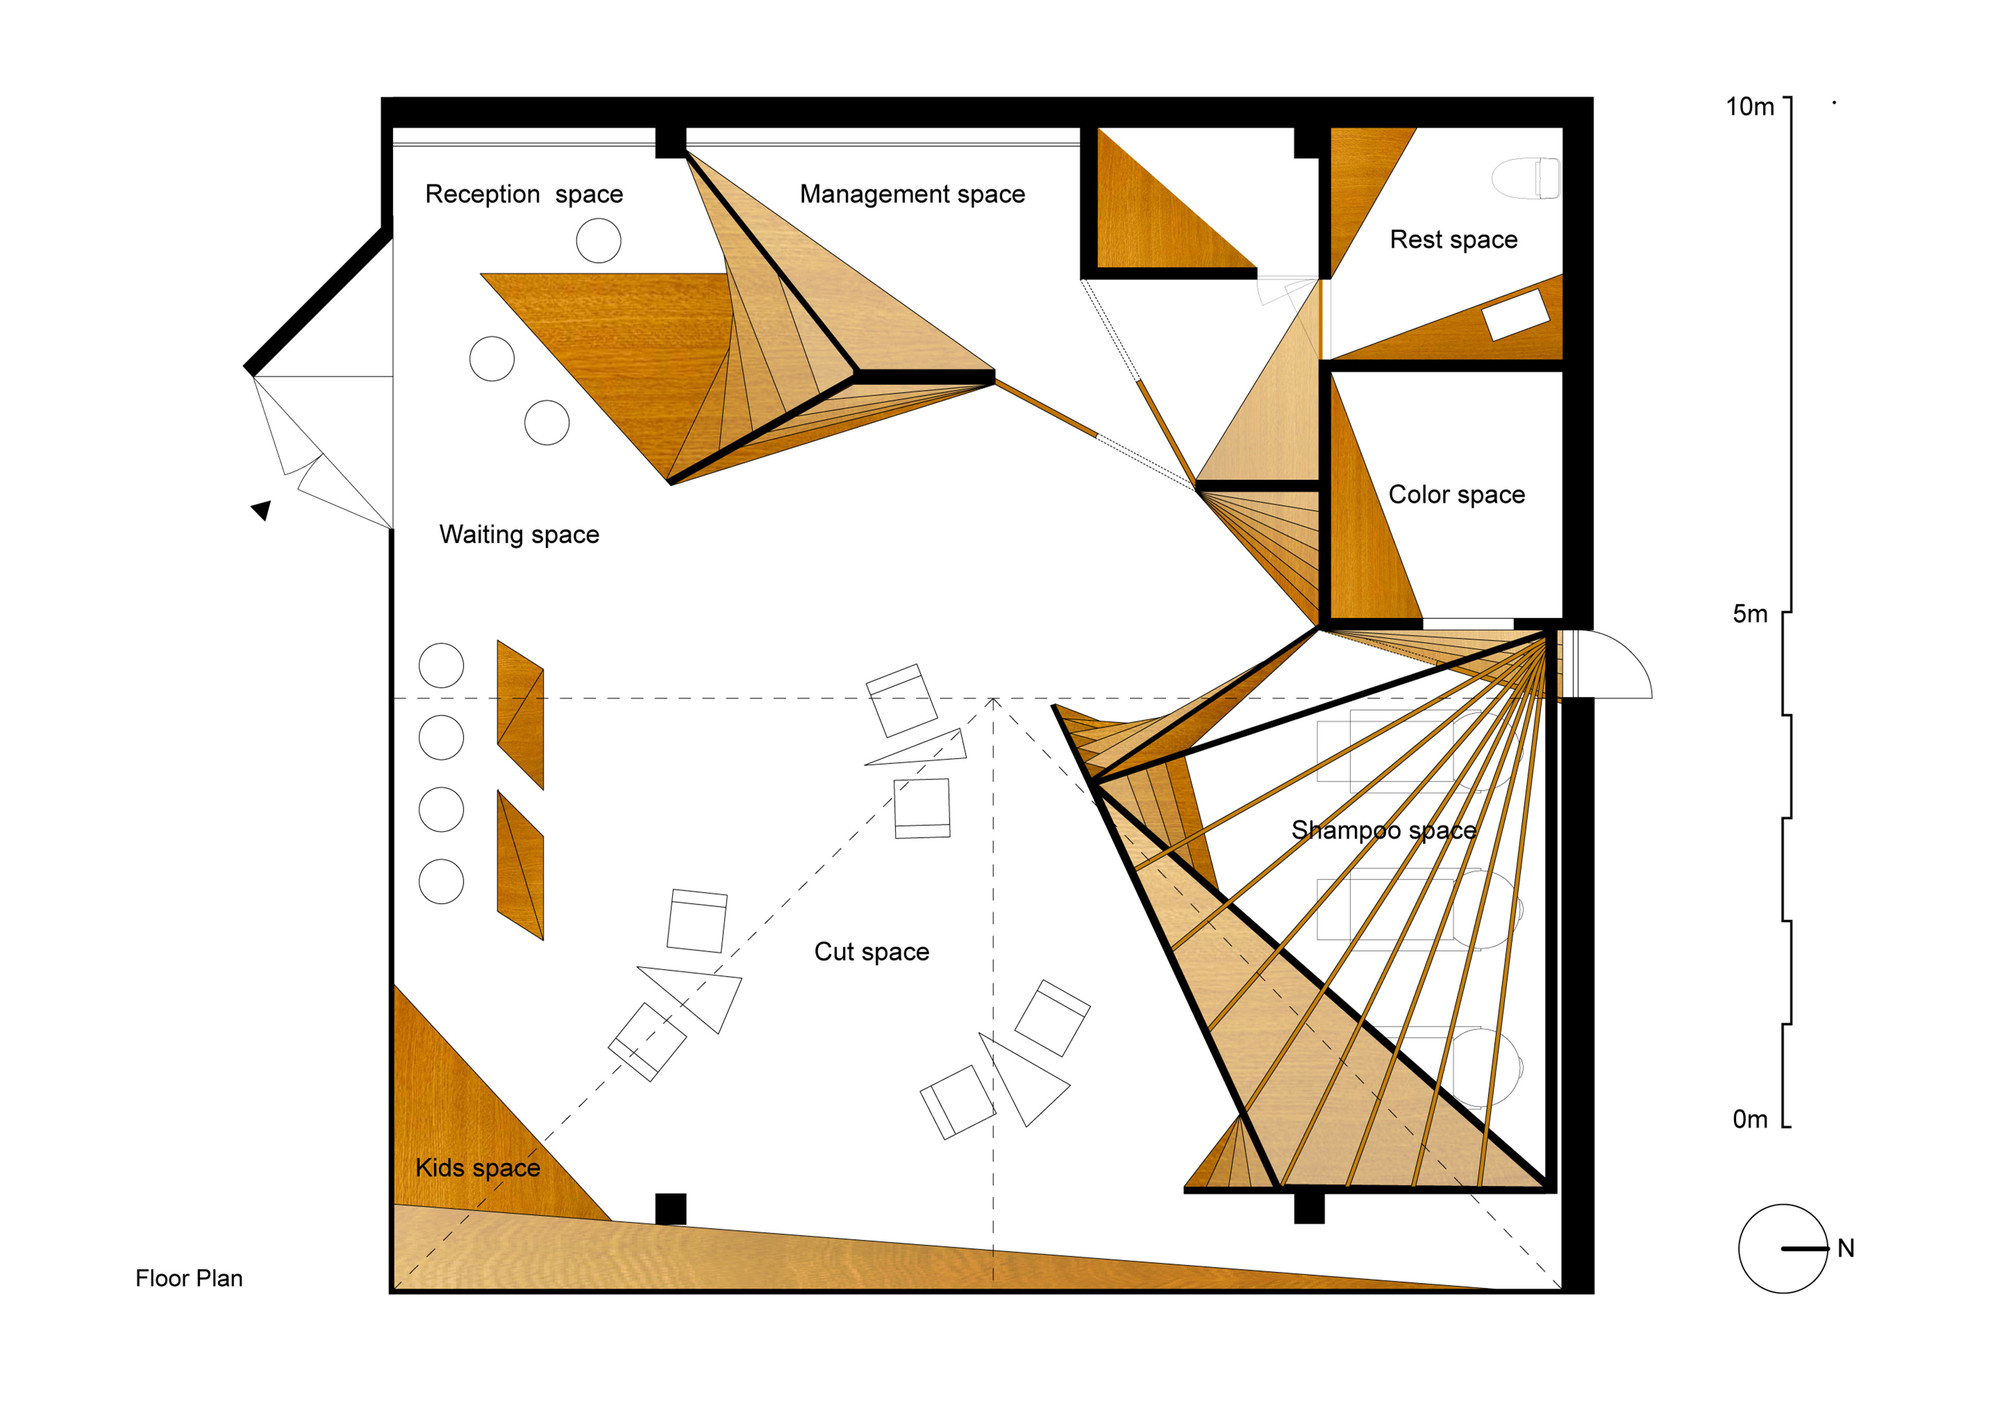 Hair salon slundre bhis archdaily for Design a beauty salon floor plan